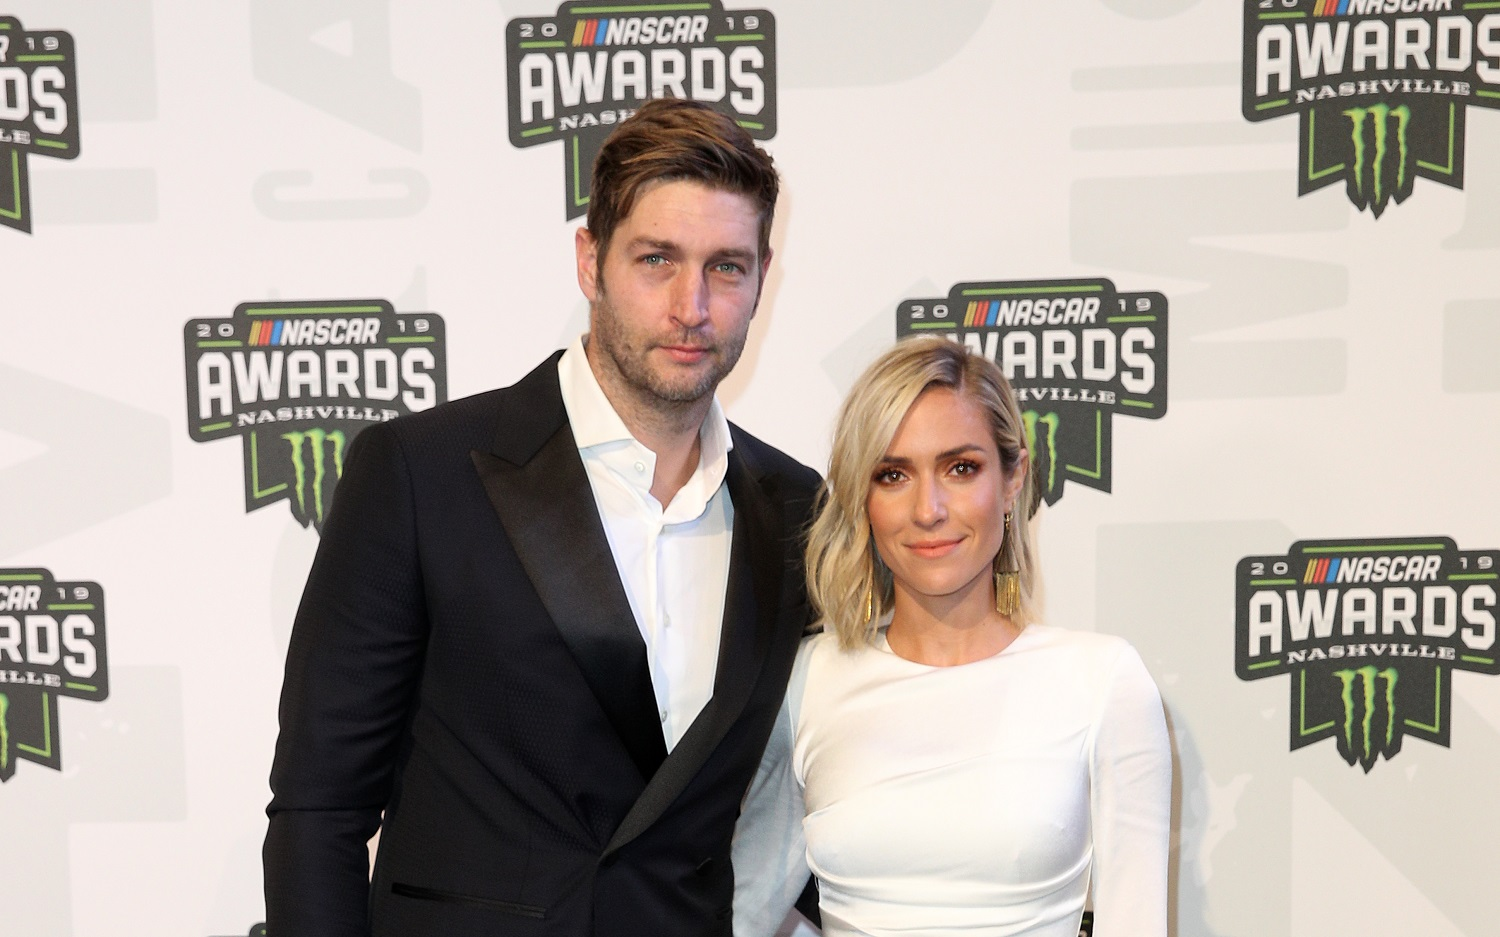 Jay Cutler and Kristin Cavallari revealed in April 2020 that they intended to divorce. | Jared C. Tilton/Getty Images